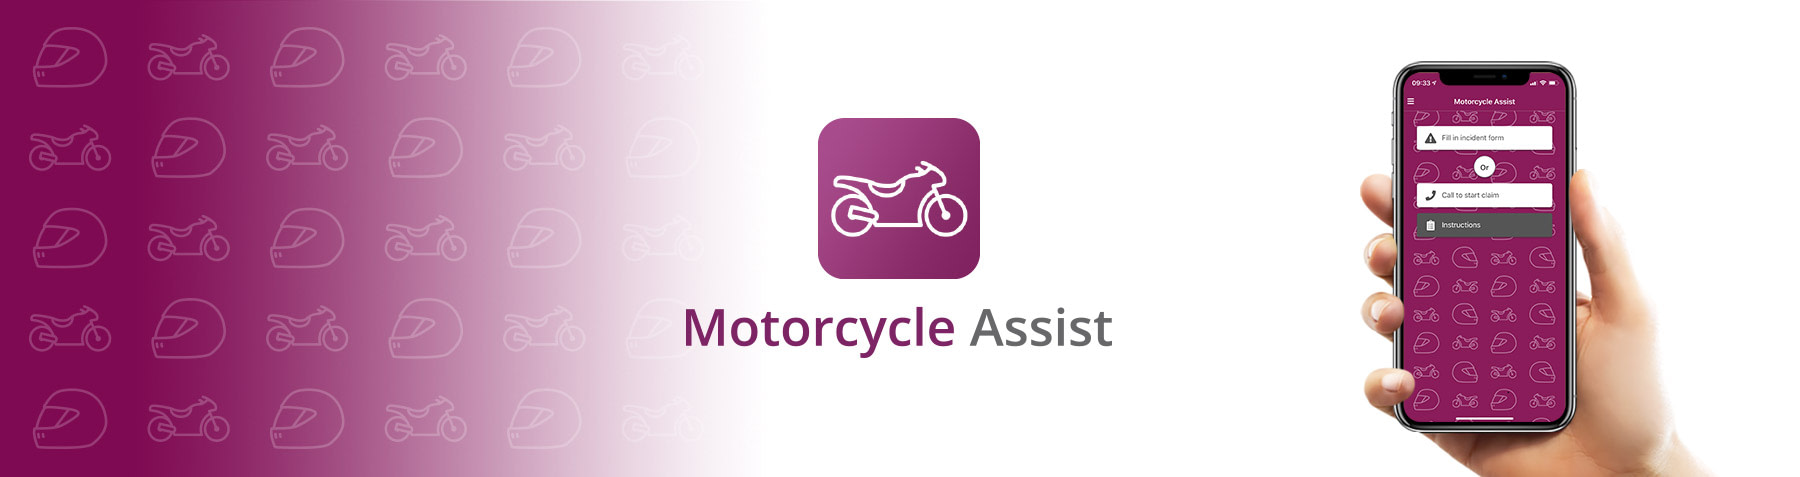 Motorcycle Assist app